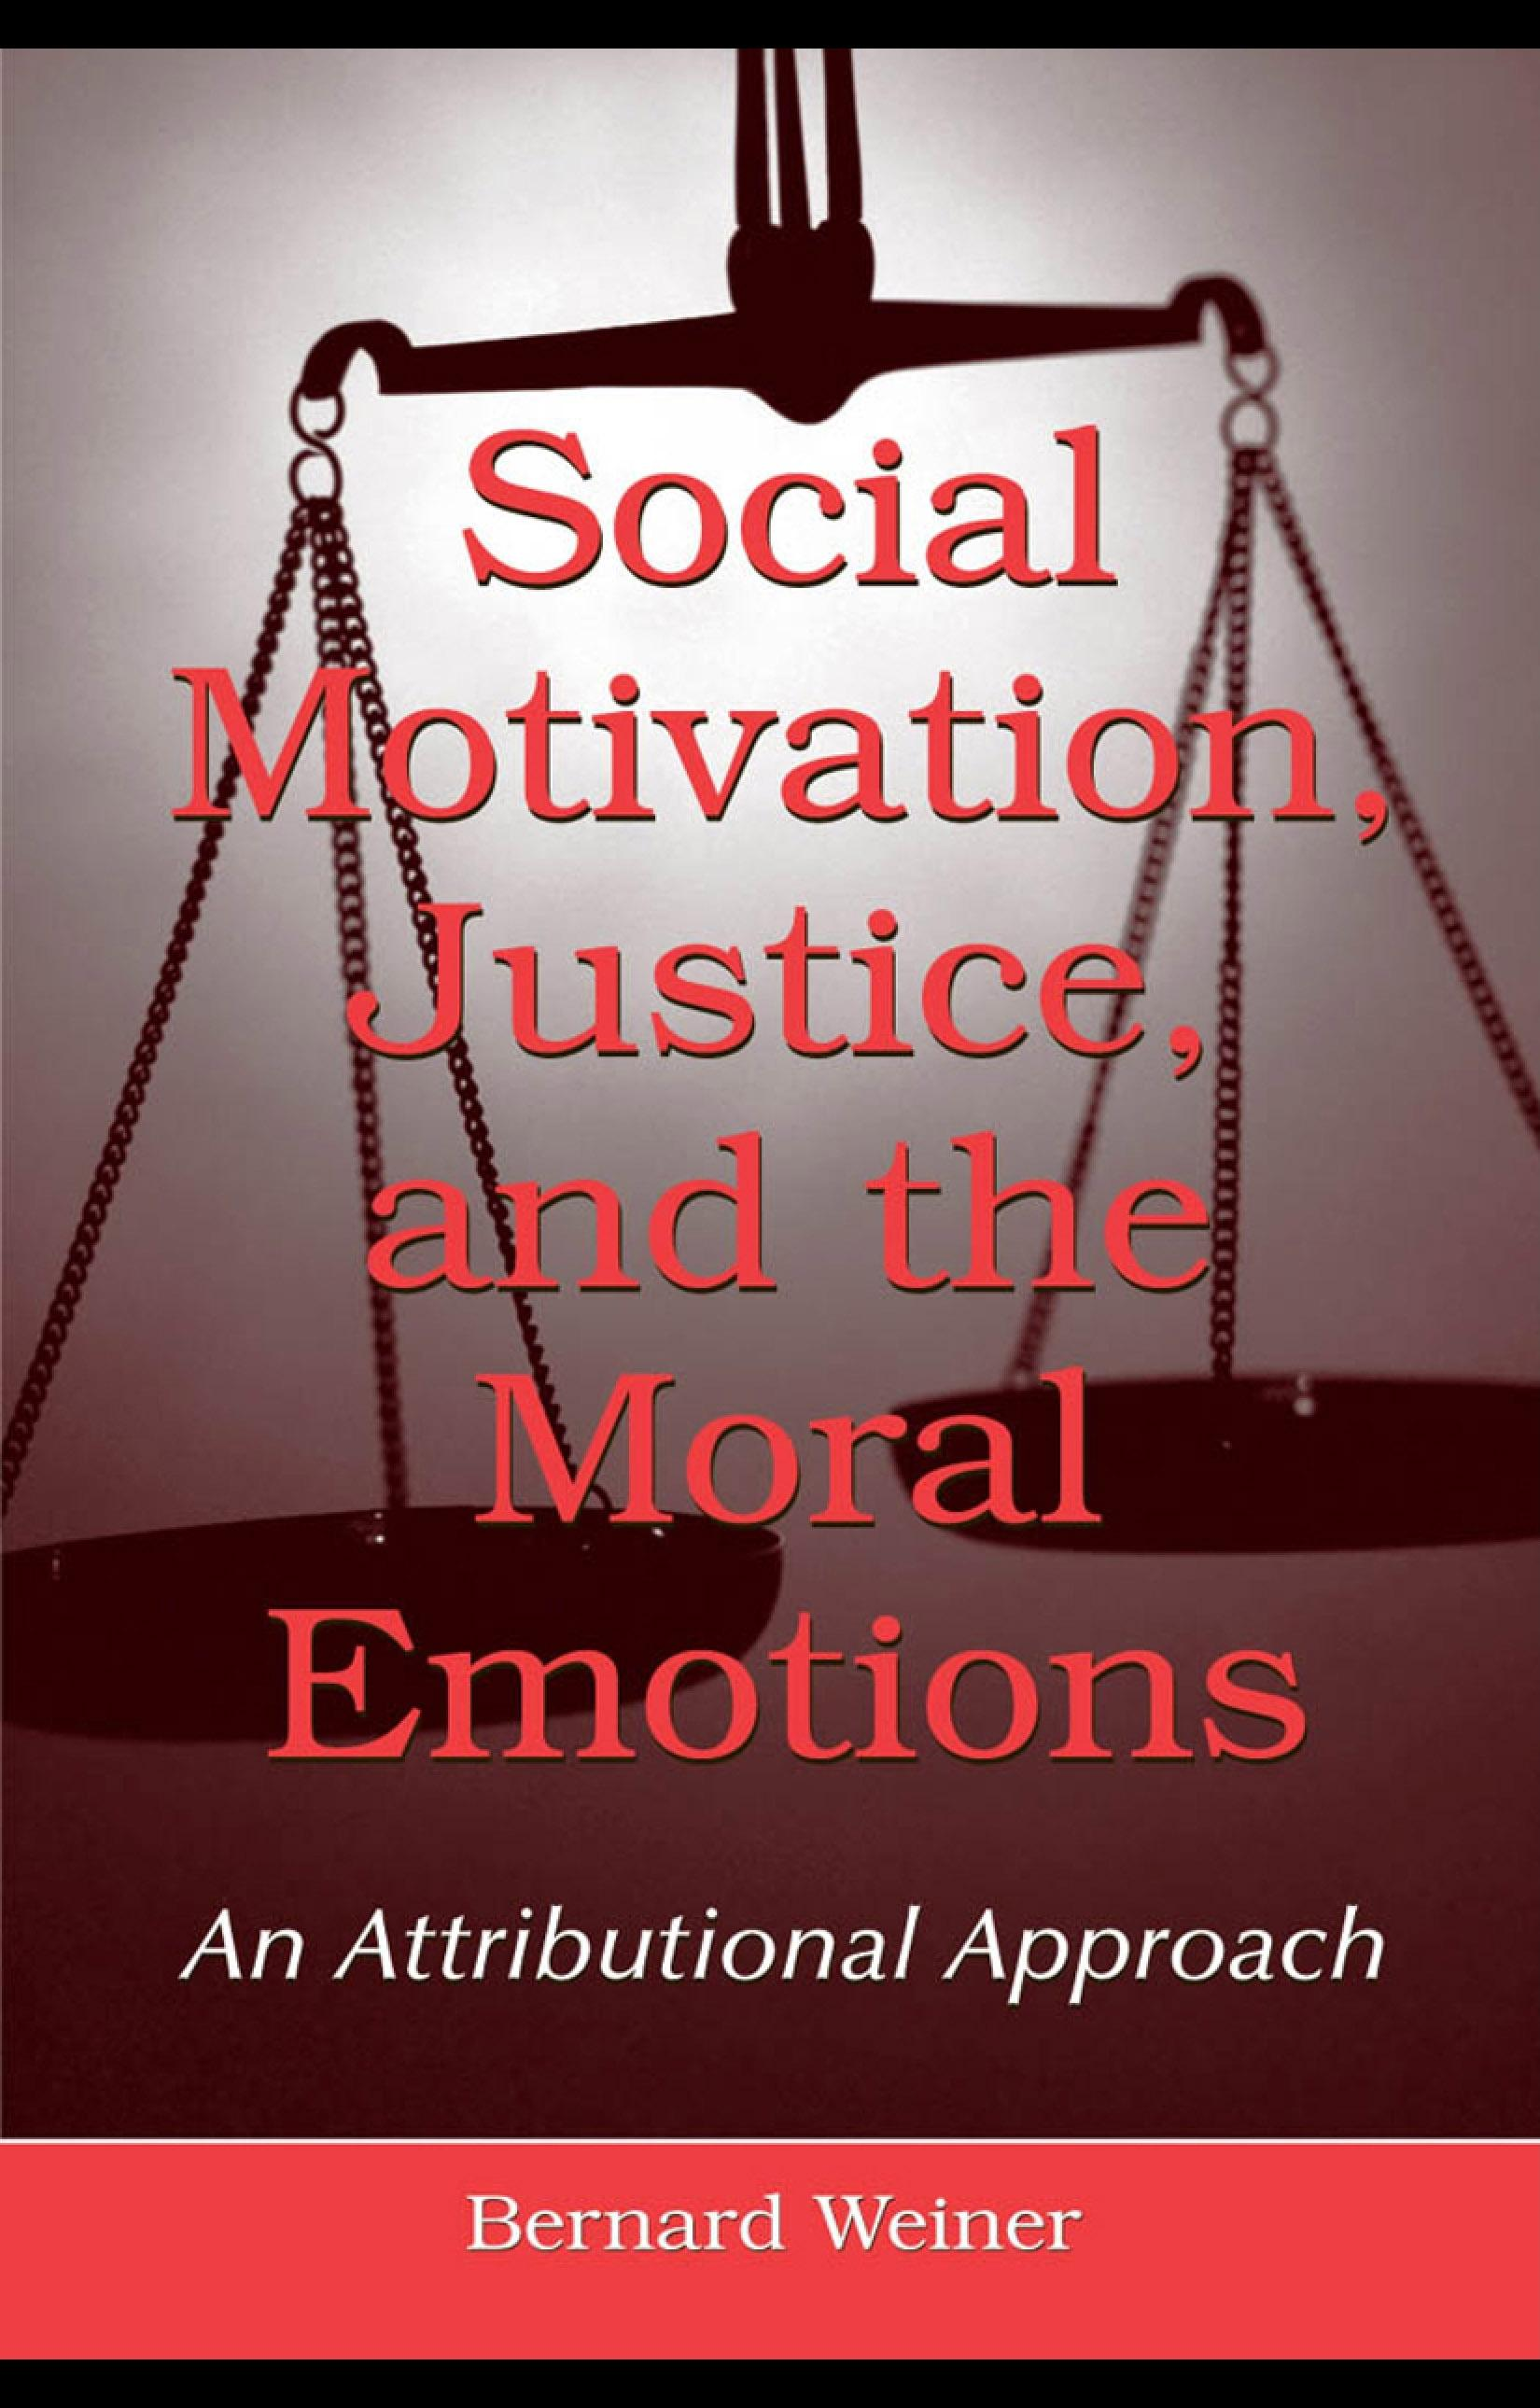 Social Motivation, Justice, and the Moral Emotions: An Attributional Approach EB9781410615749